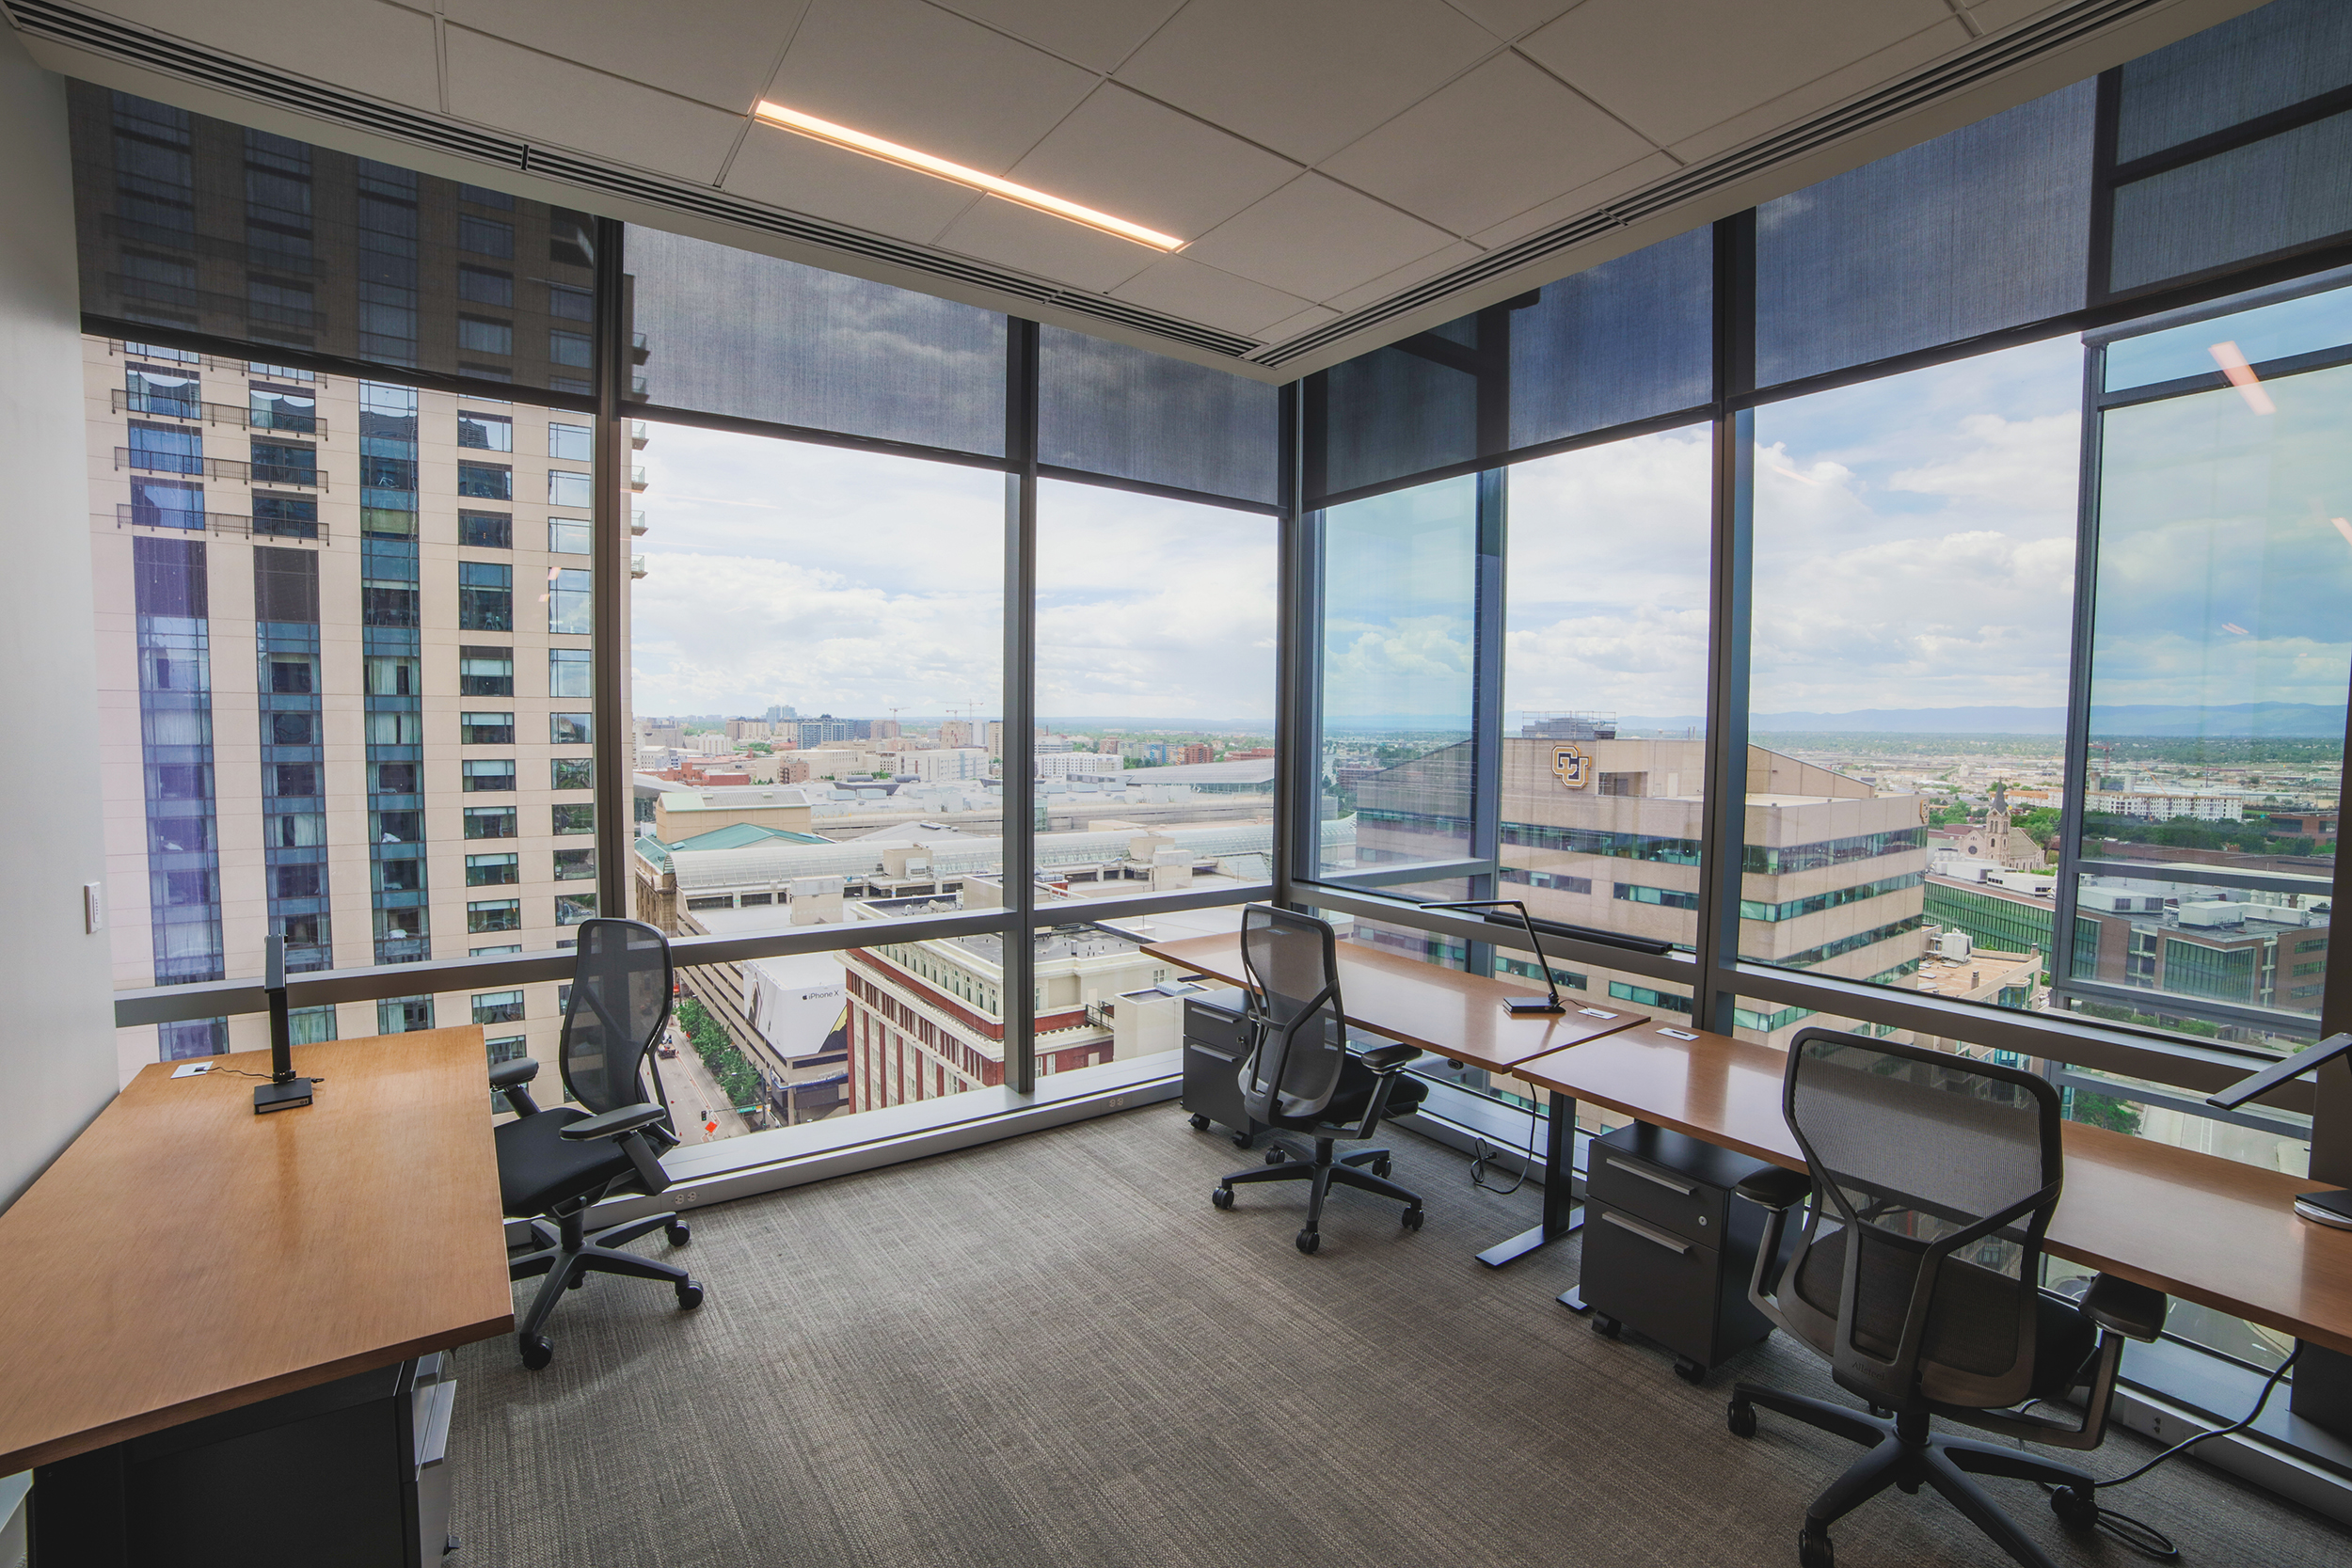 Firmspace office space for rent in downtown Denver